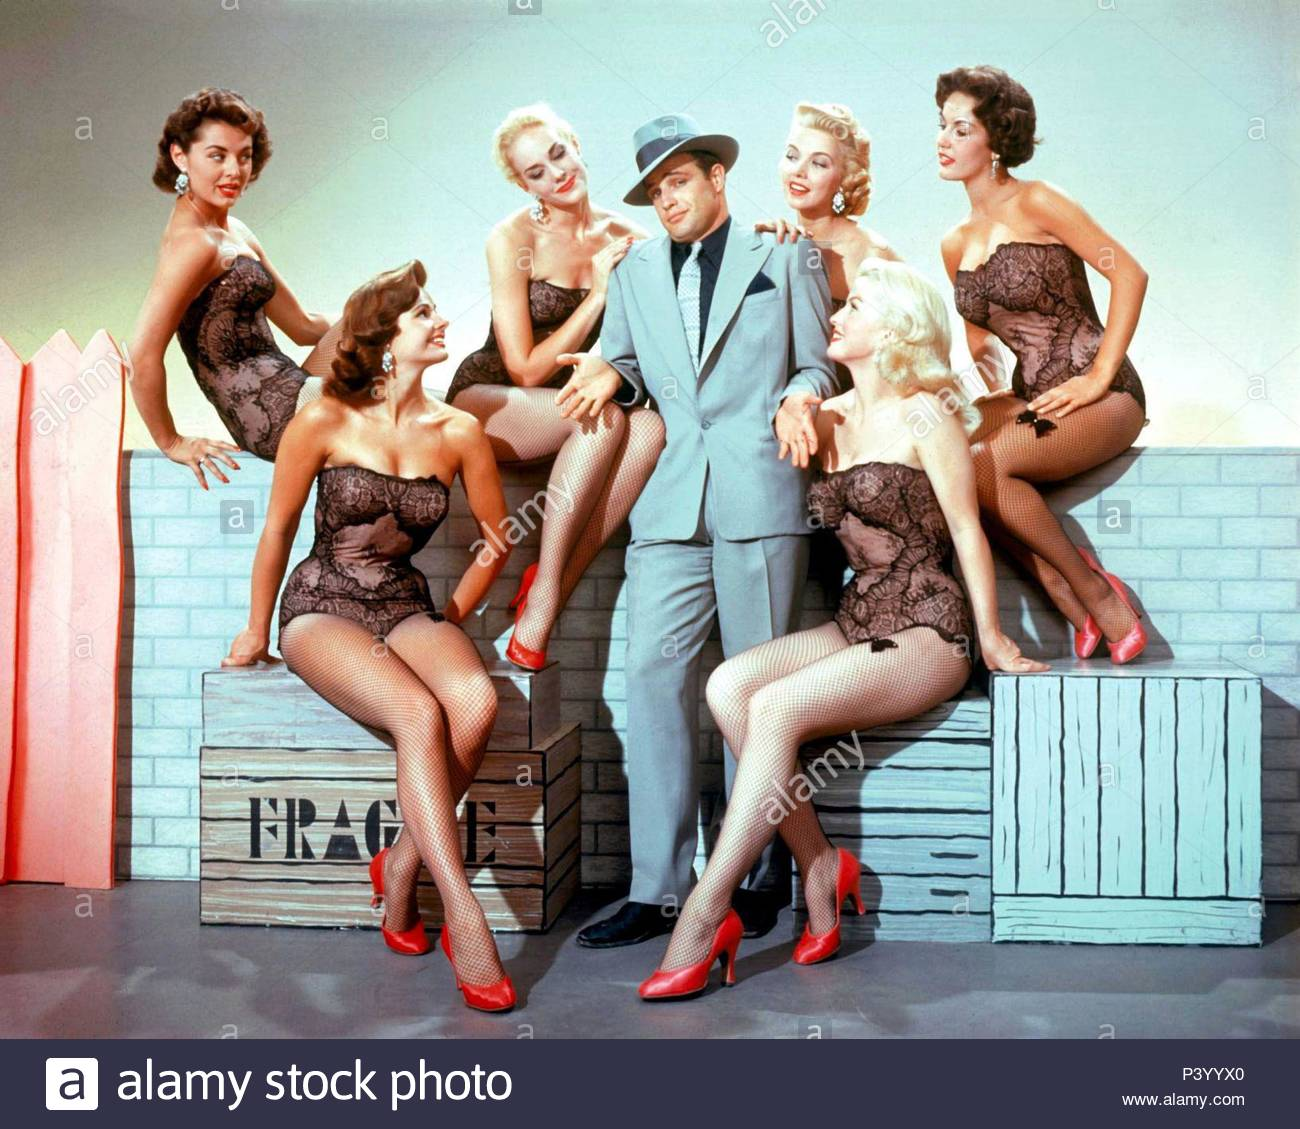 Original Film Title: GUYS AND DOLLS.  English Title: GUYS AND DOLLS.  Film Director: JOSEPH L. MANKIEWICZ.  Year: 1955.  Stars: MARLON BRANDO. Credit: M.G.M/SAMUEL GOLDWYN / Album - Stock Image